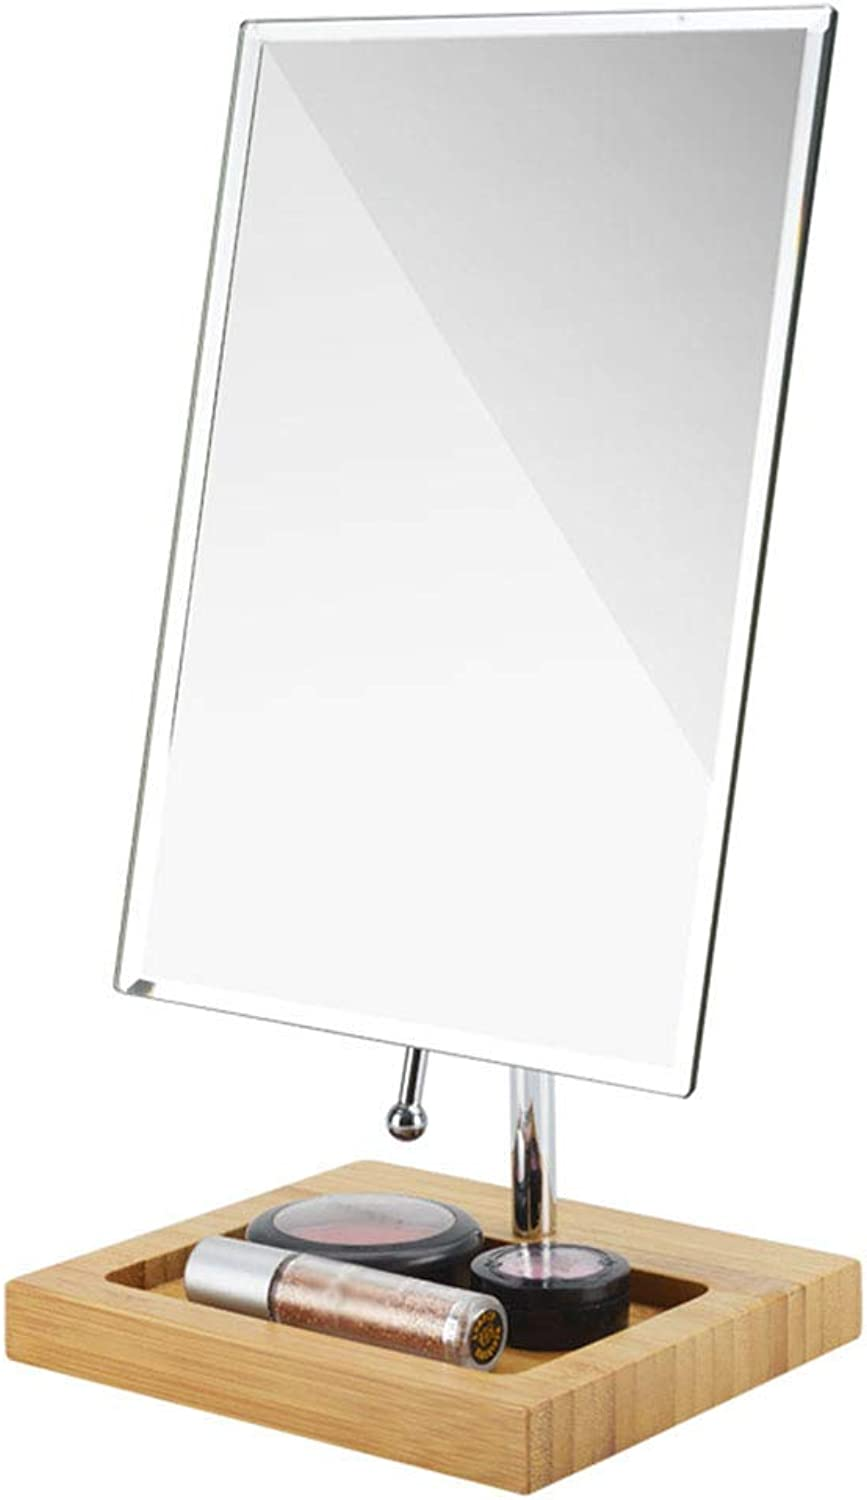 Makeup Mirror Desktop Desktop Metallic Wood redating Storage Square Single Side HD